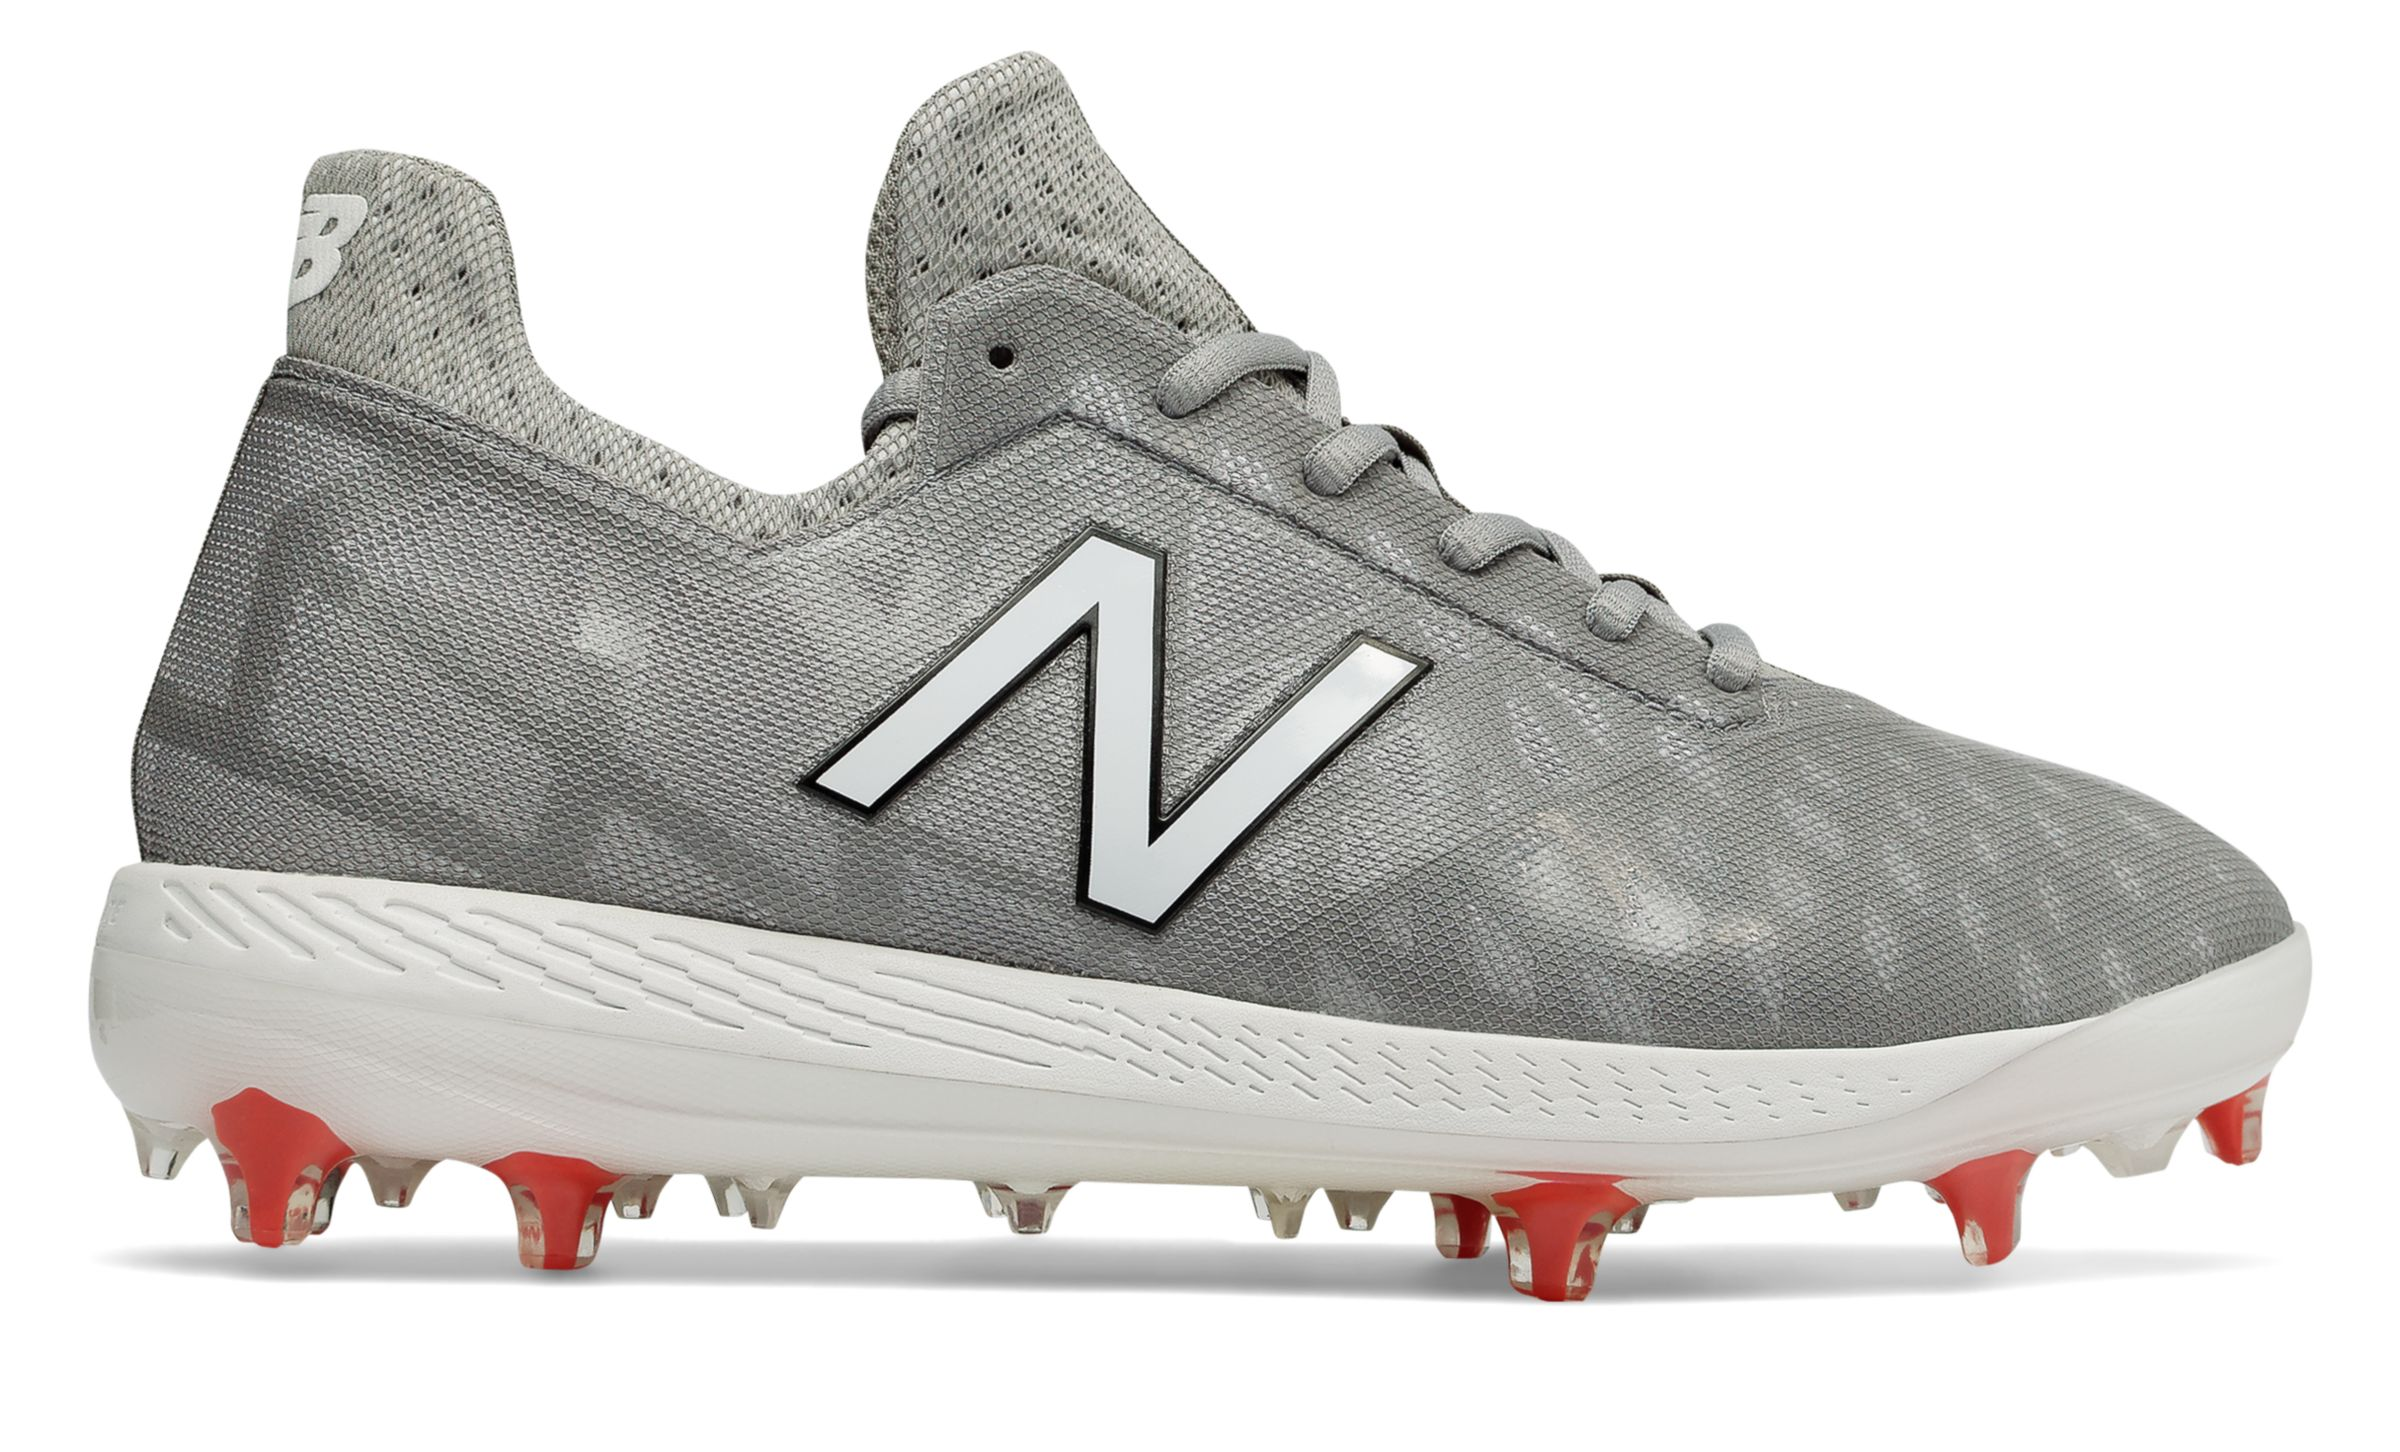 New Balance COMPv1 Baseball Cleat COMPTG1-10 Grey//White